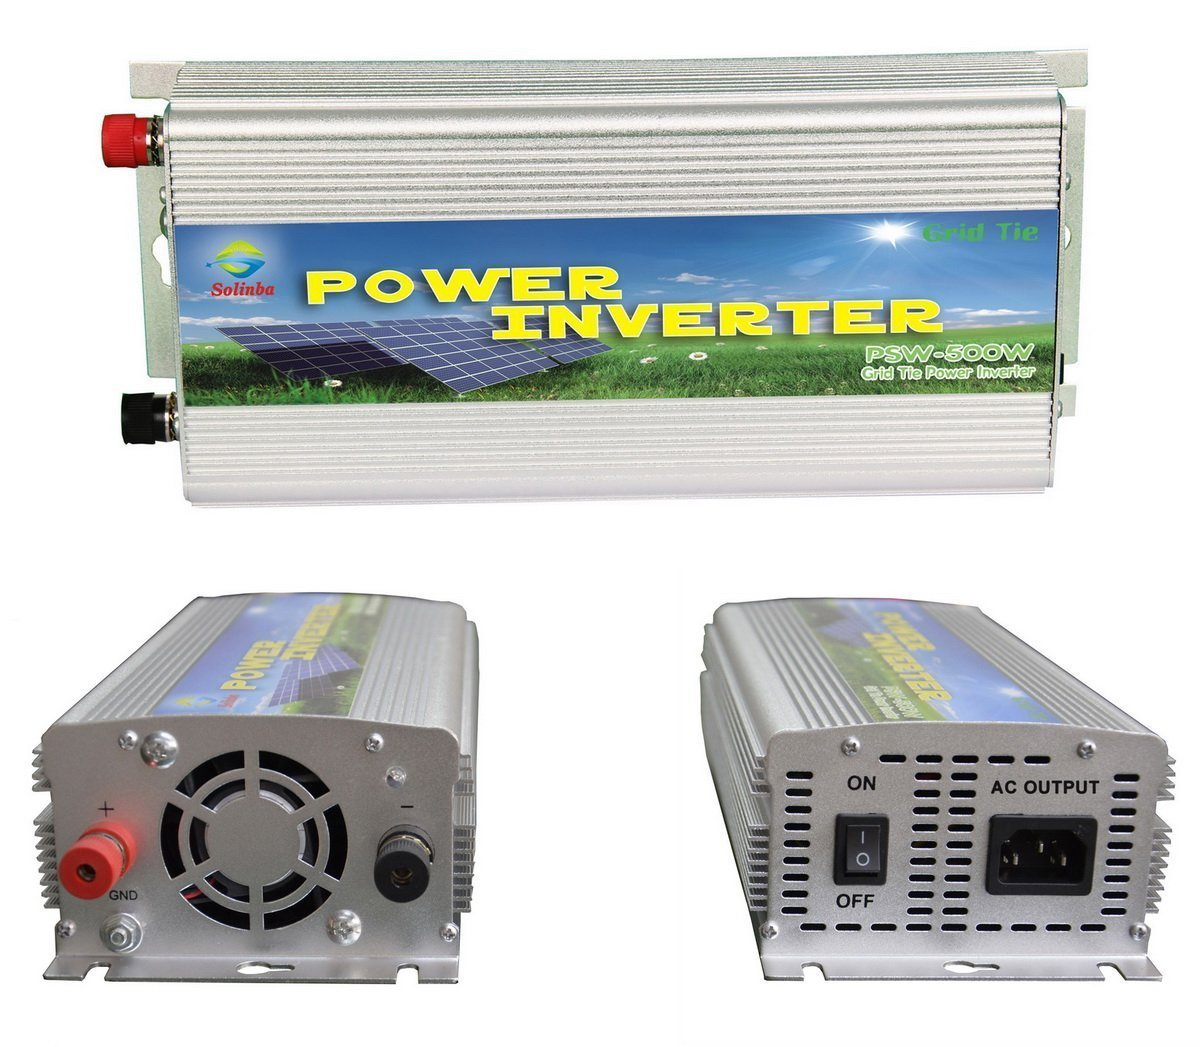 Solinba Grid Tie Power Inverter 500w for Solar Panel, Converter, MPPT, Silver, UK, DC22v-56v to AC 220v